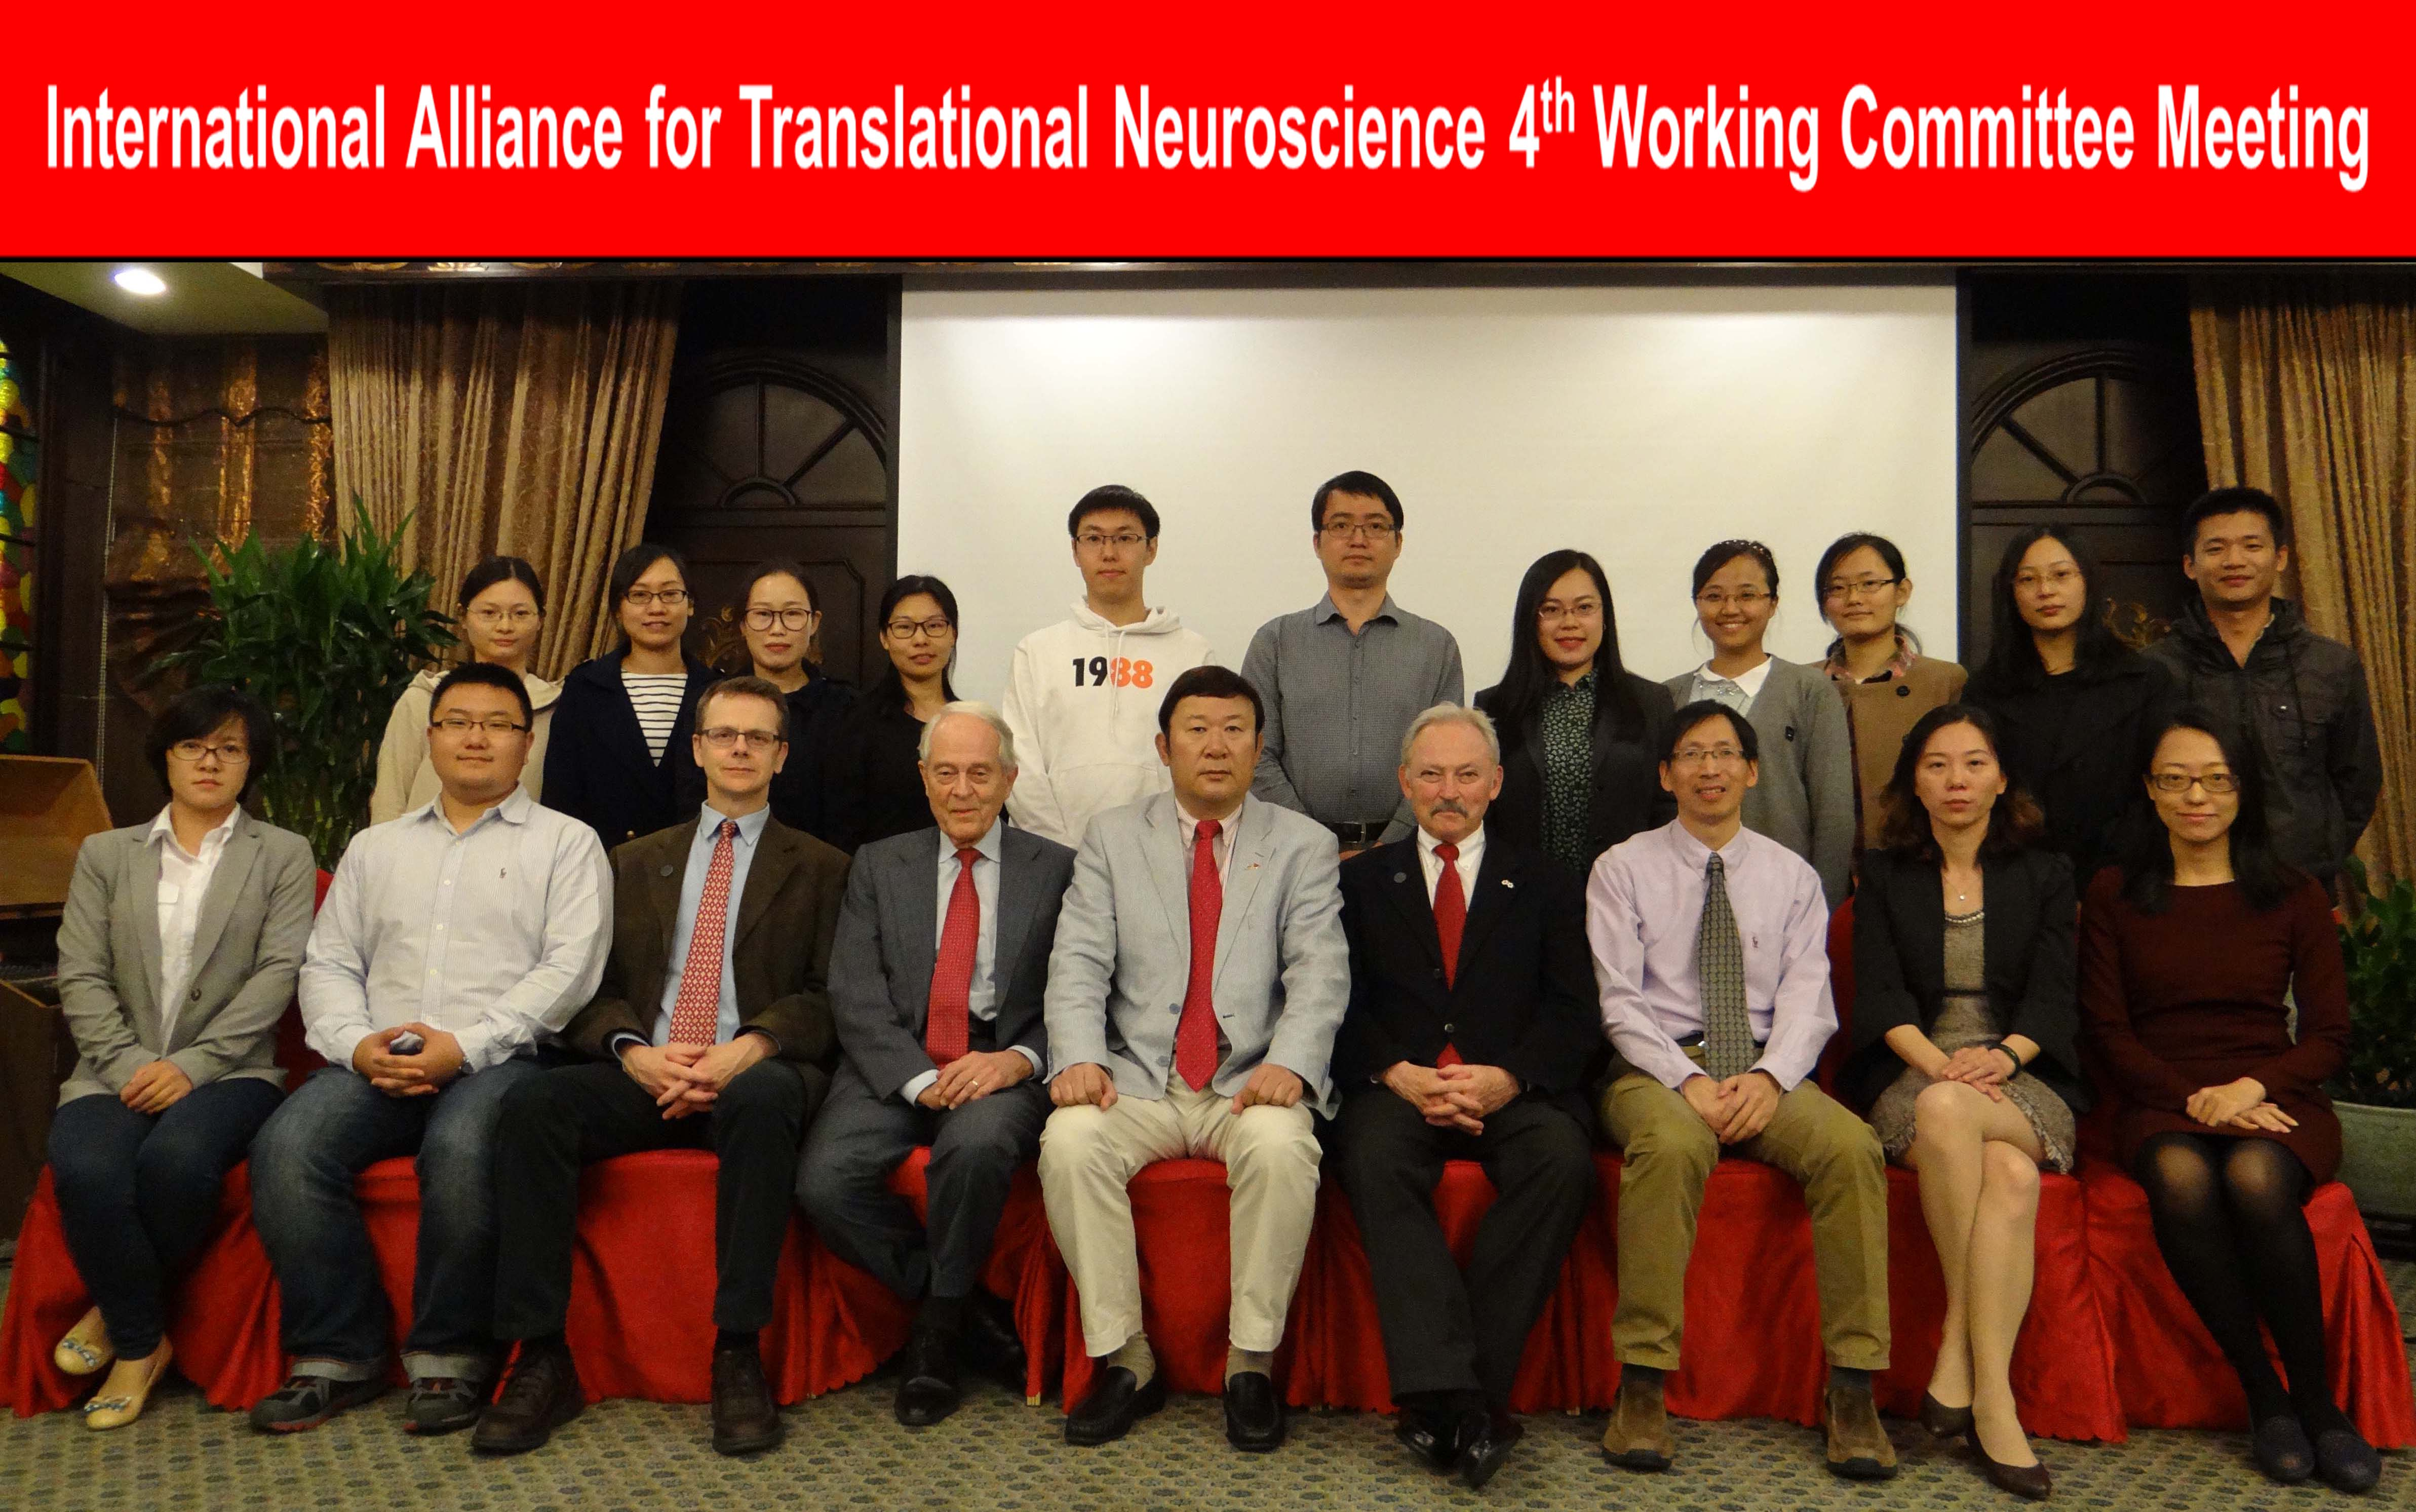 The 4th Working Committee Meeting of International Alliance of Translational Neuroscience Was Successfully Held